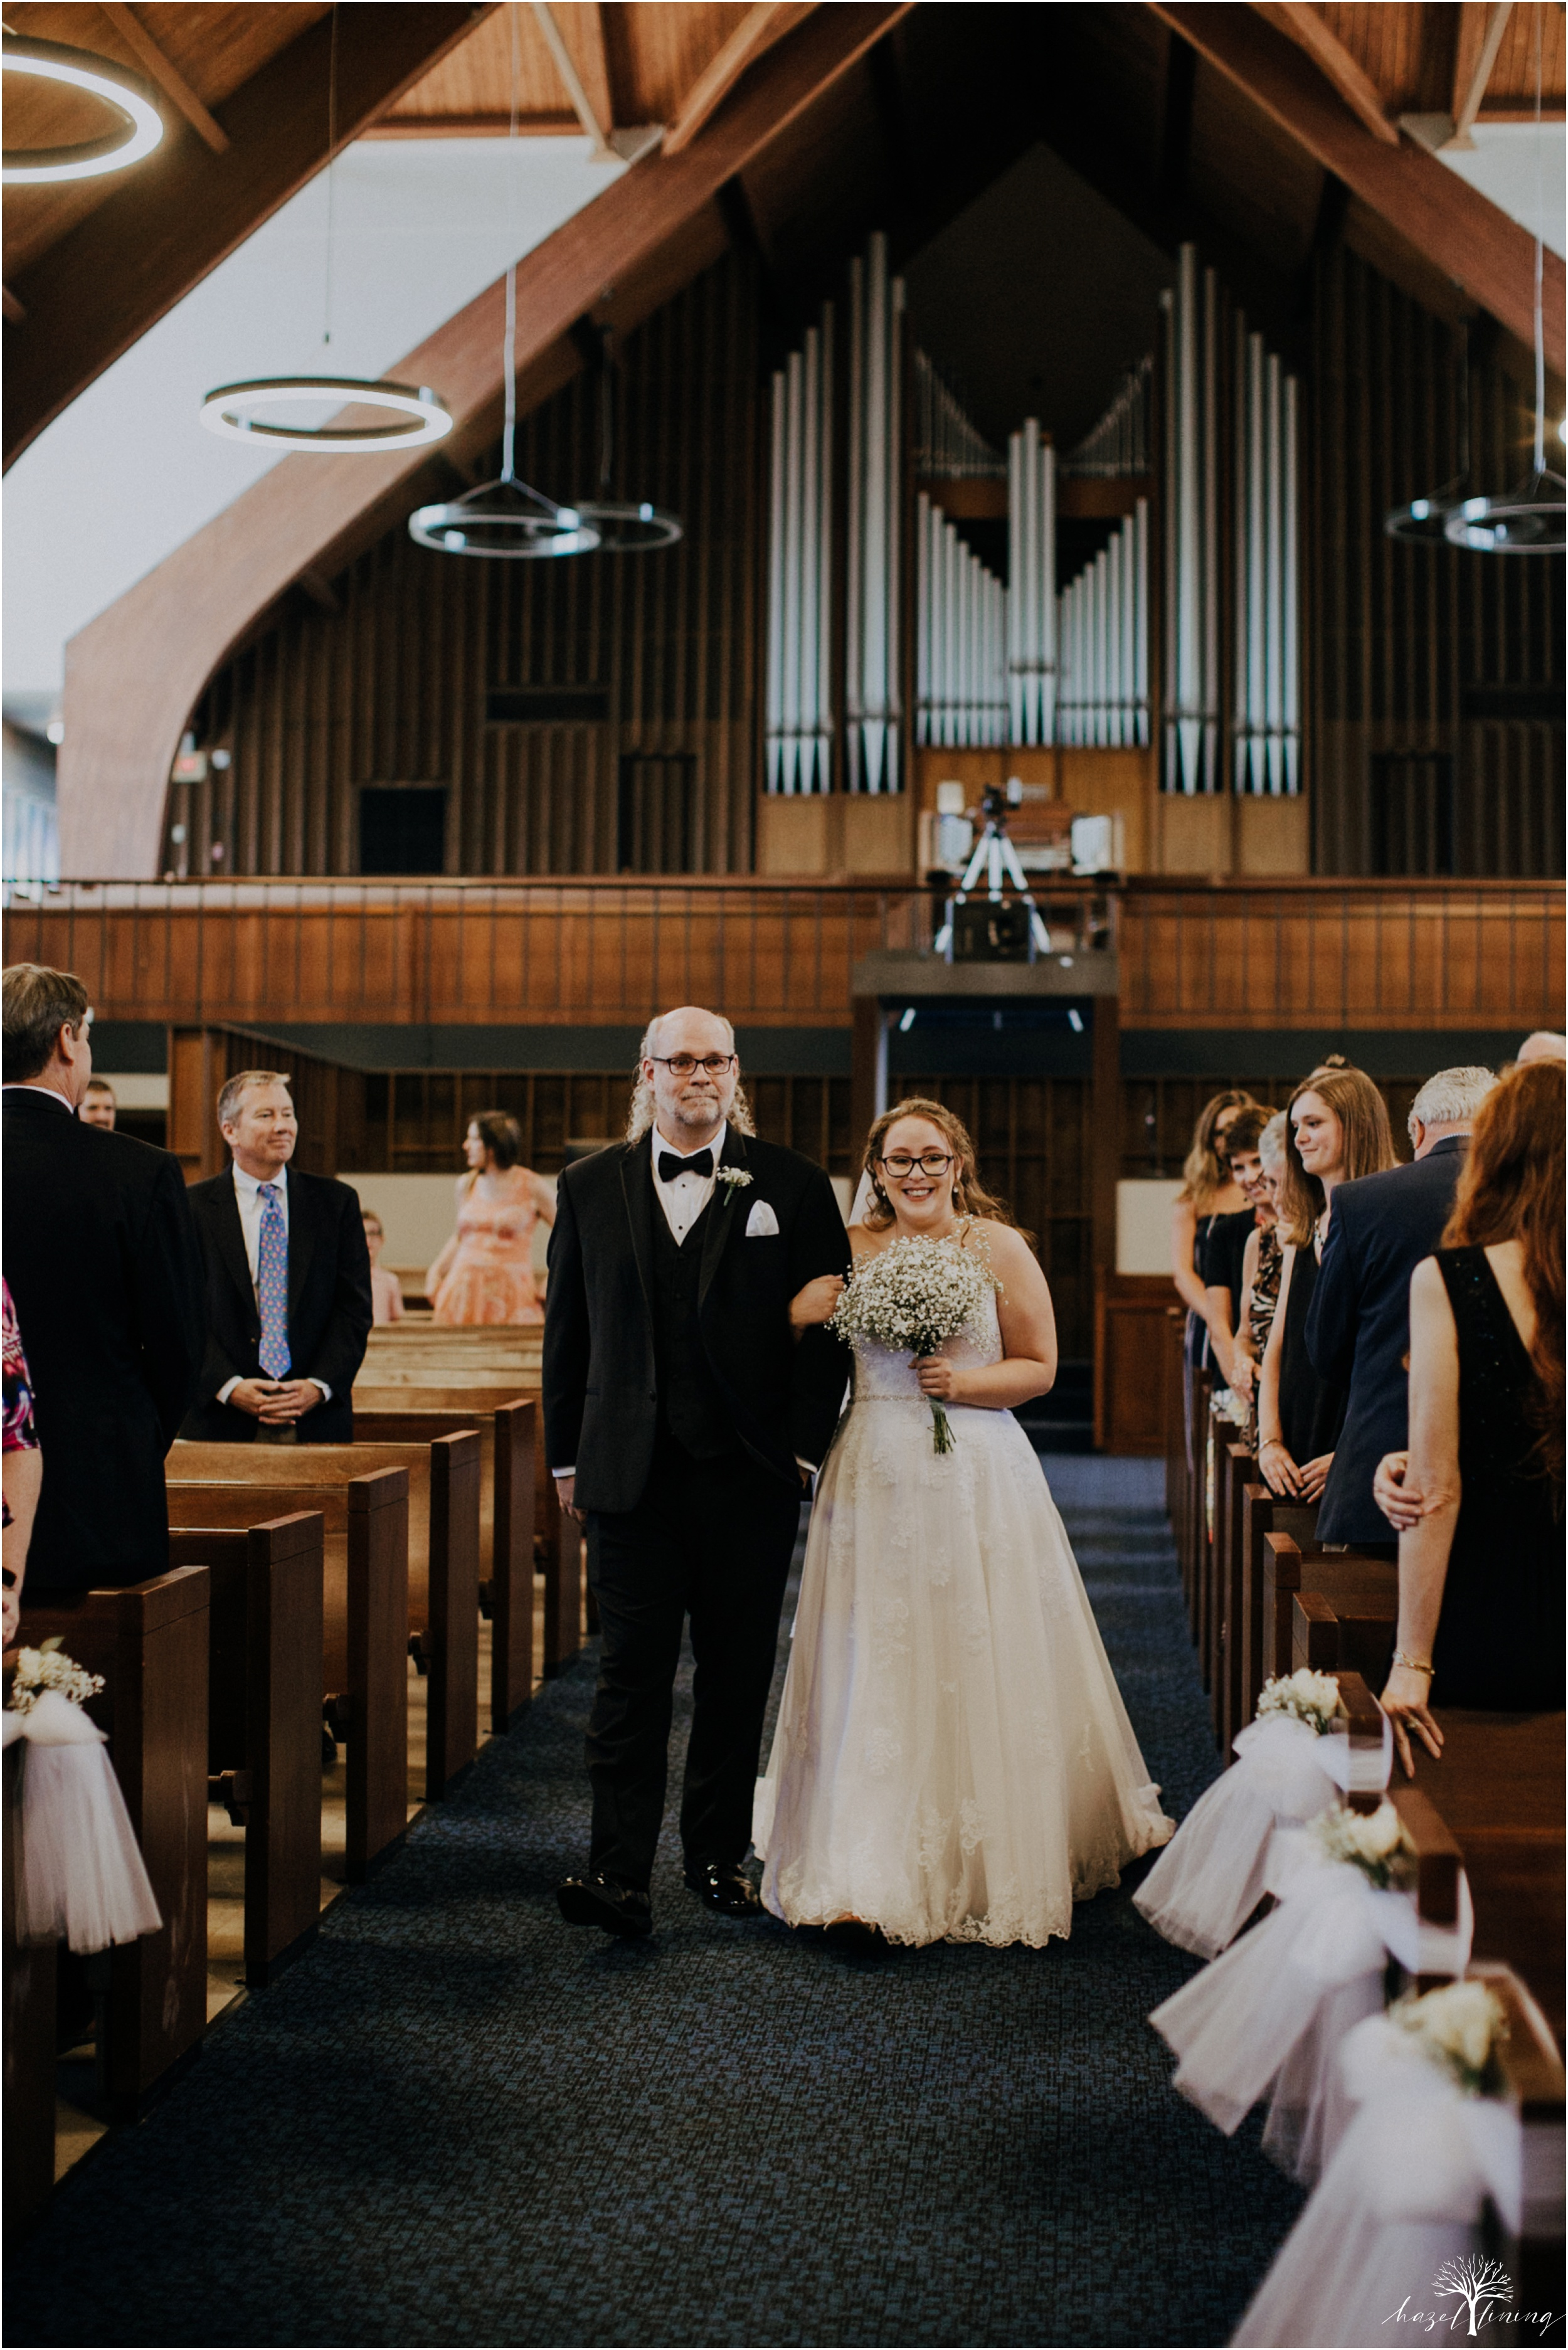 laura-zach-mccaskill-harmony-hall-lebanon-valley-college-summer-wedding-hazel-lining-photography-destination-elopement-wedding-engagement-photography_0053.jpg